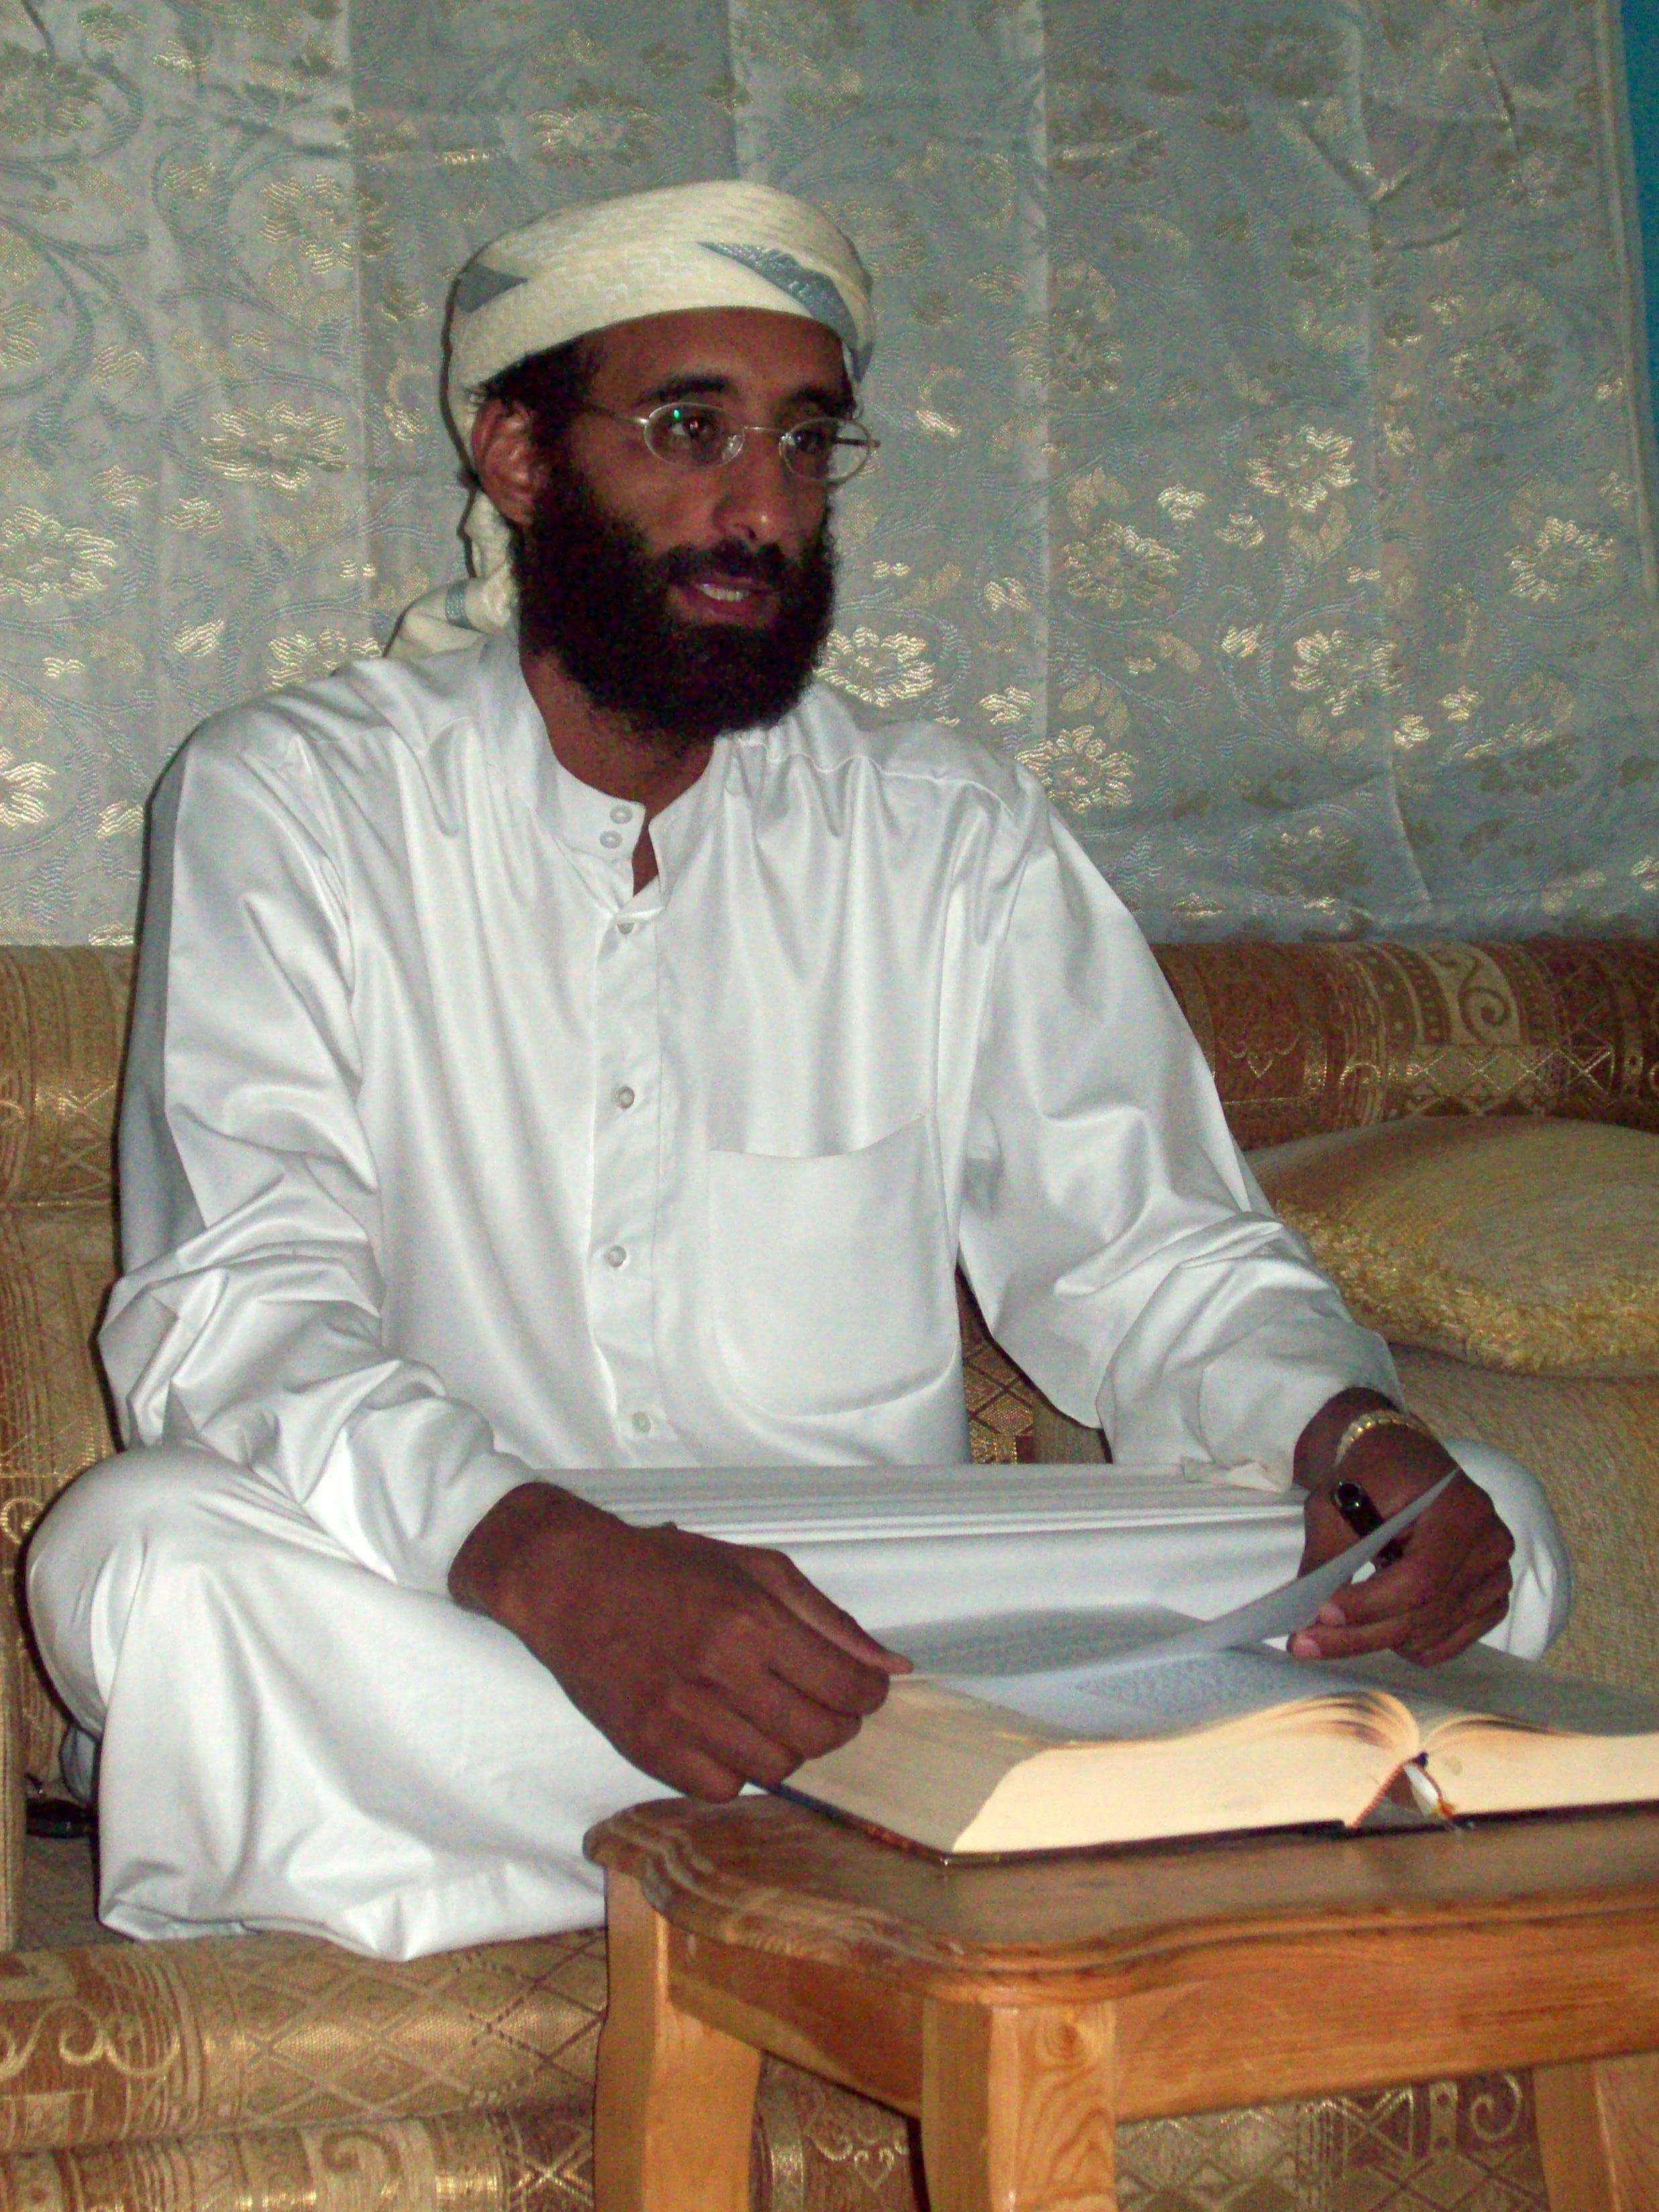 A federal appeals court on Monday released a previously secret memo that provided legal justification for using drones to kill Americans suspected of terrorism overseas. The memo pertained specifically to the September 2011 killing in Yemen of Anwar Al-Awlaki, an al-Qaida leader born in the United States.